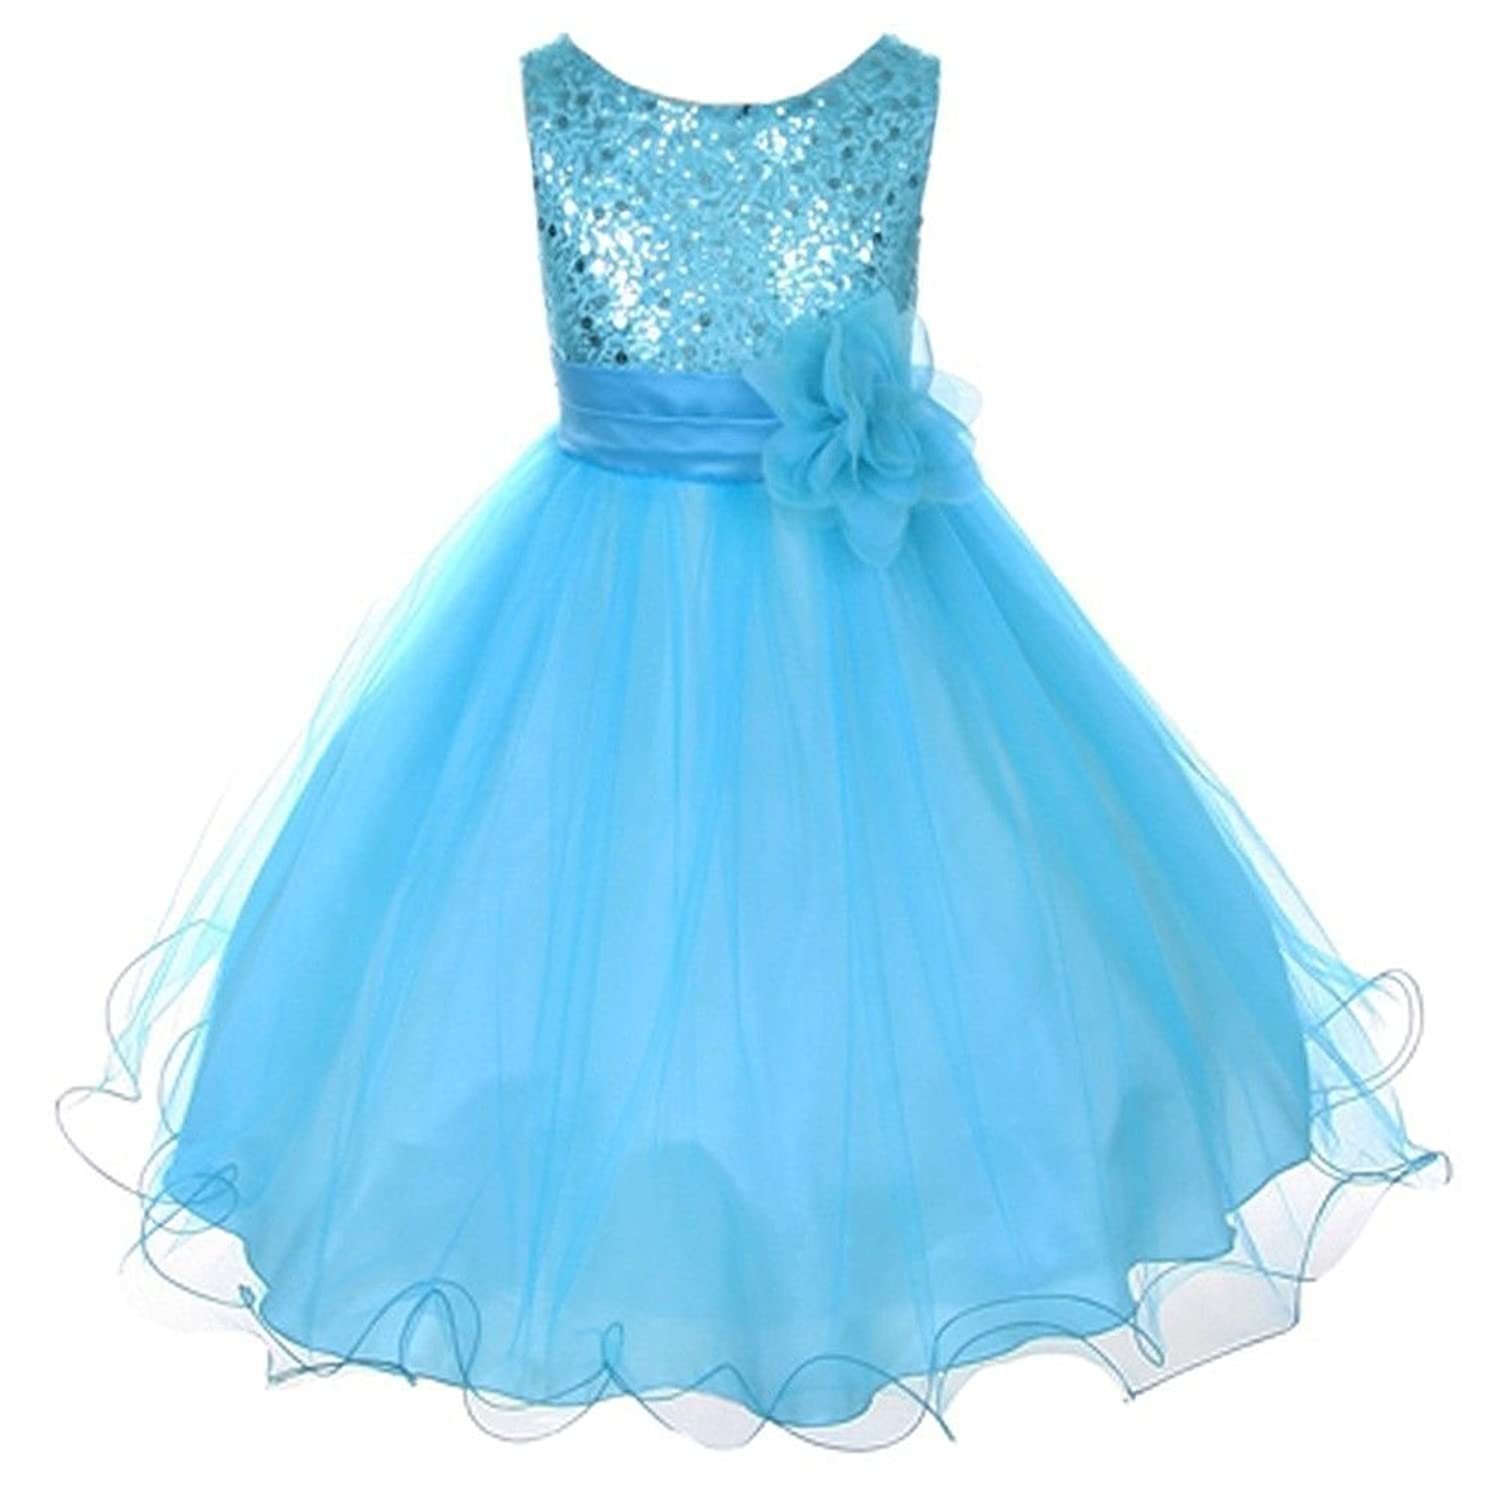 Amazon.com: Sparkly Sequined Mesh Big Girls\' Flower Dress Pageant ...